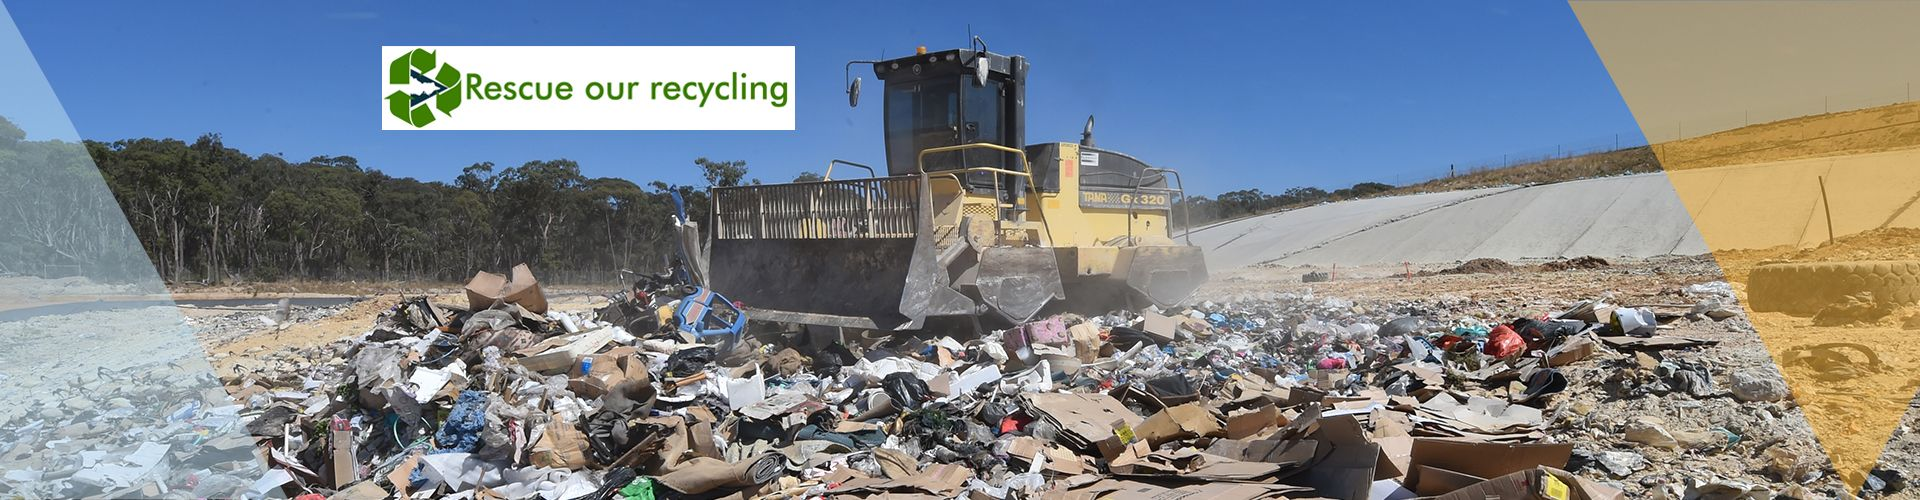 Rescue our Recycling action plan launched Image